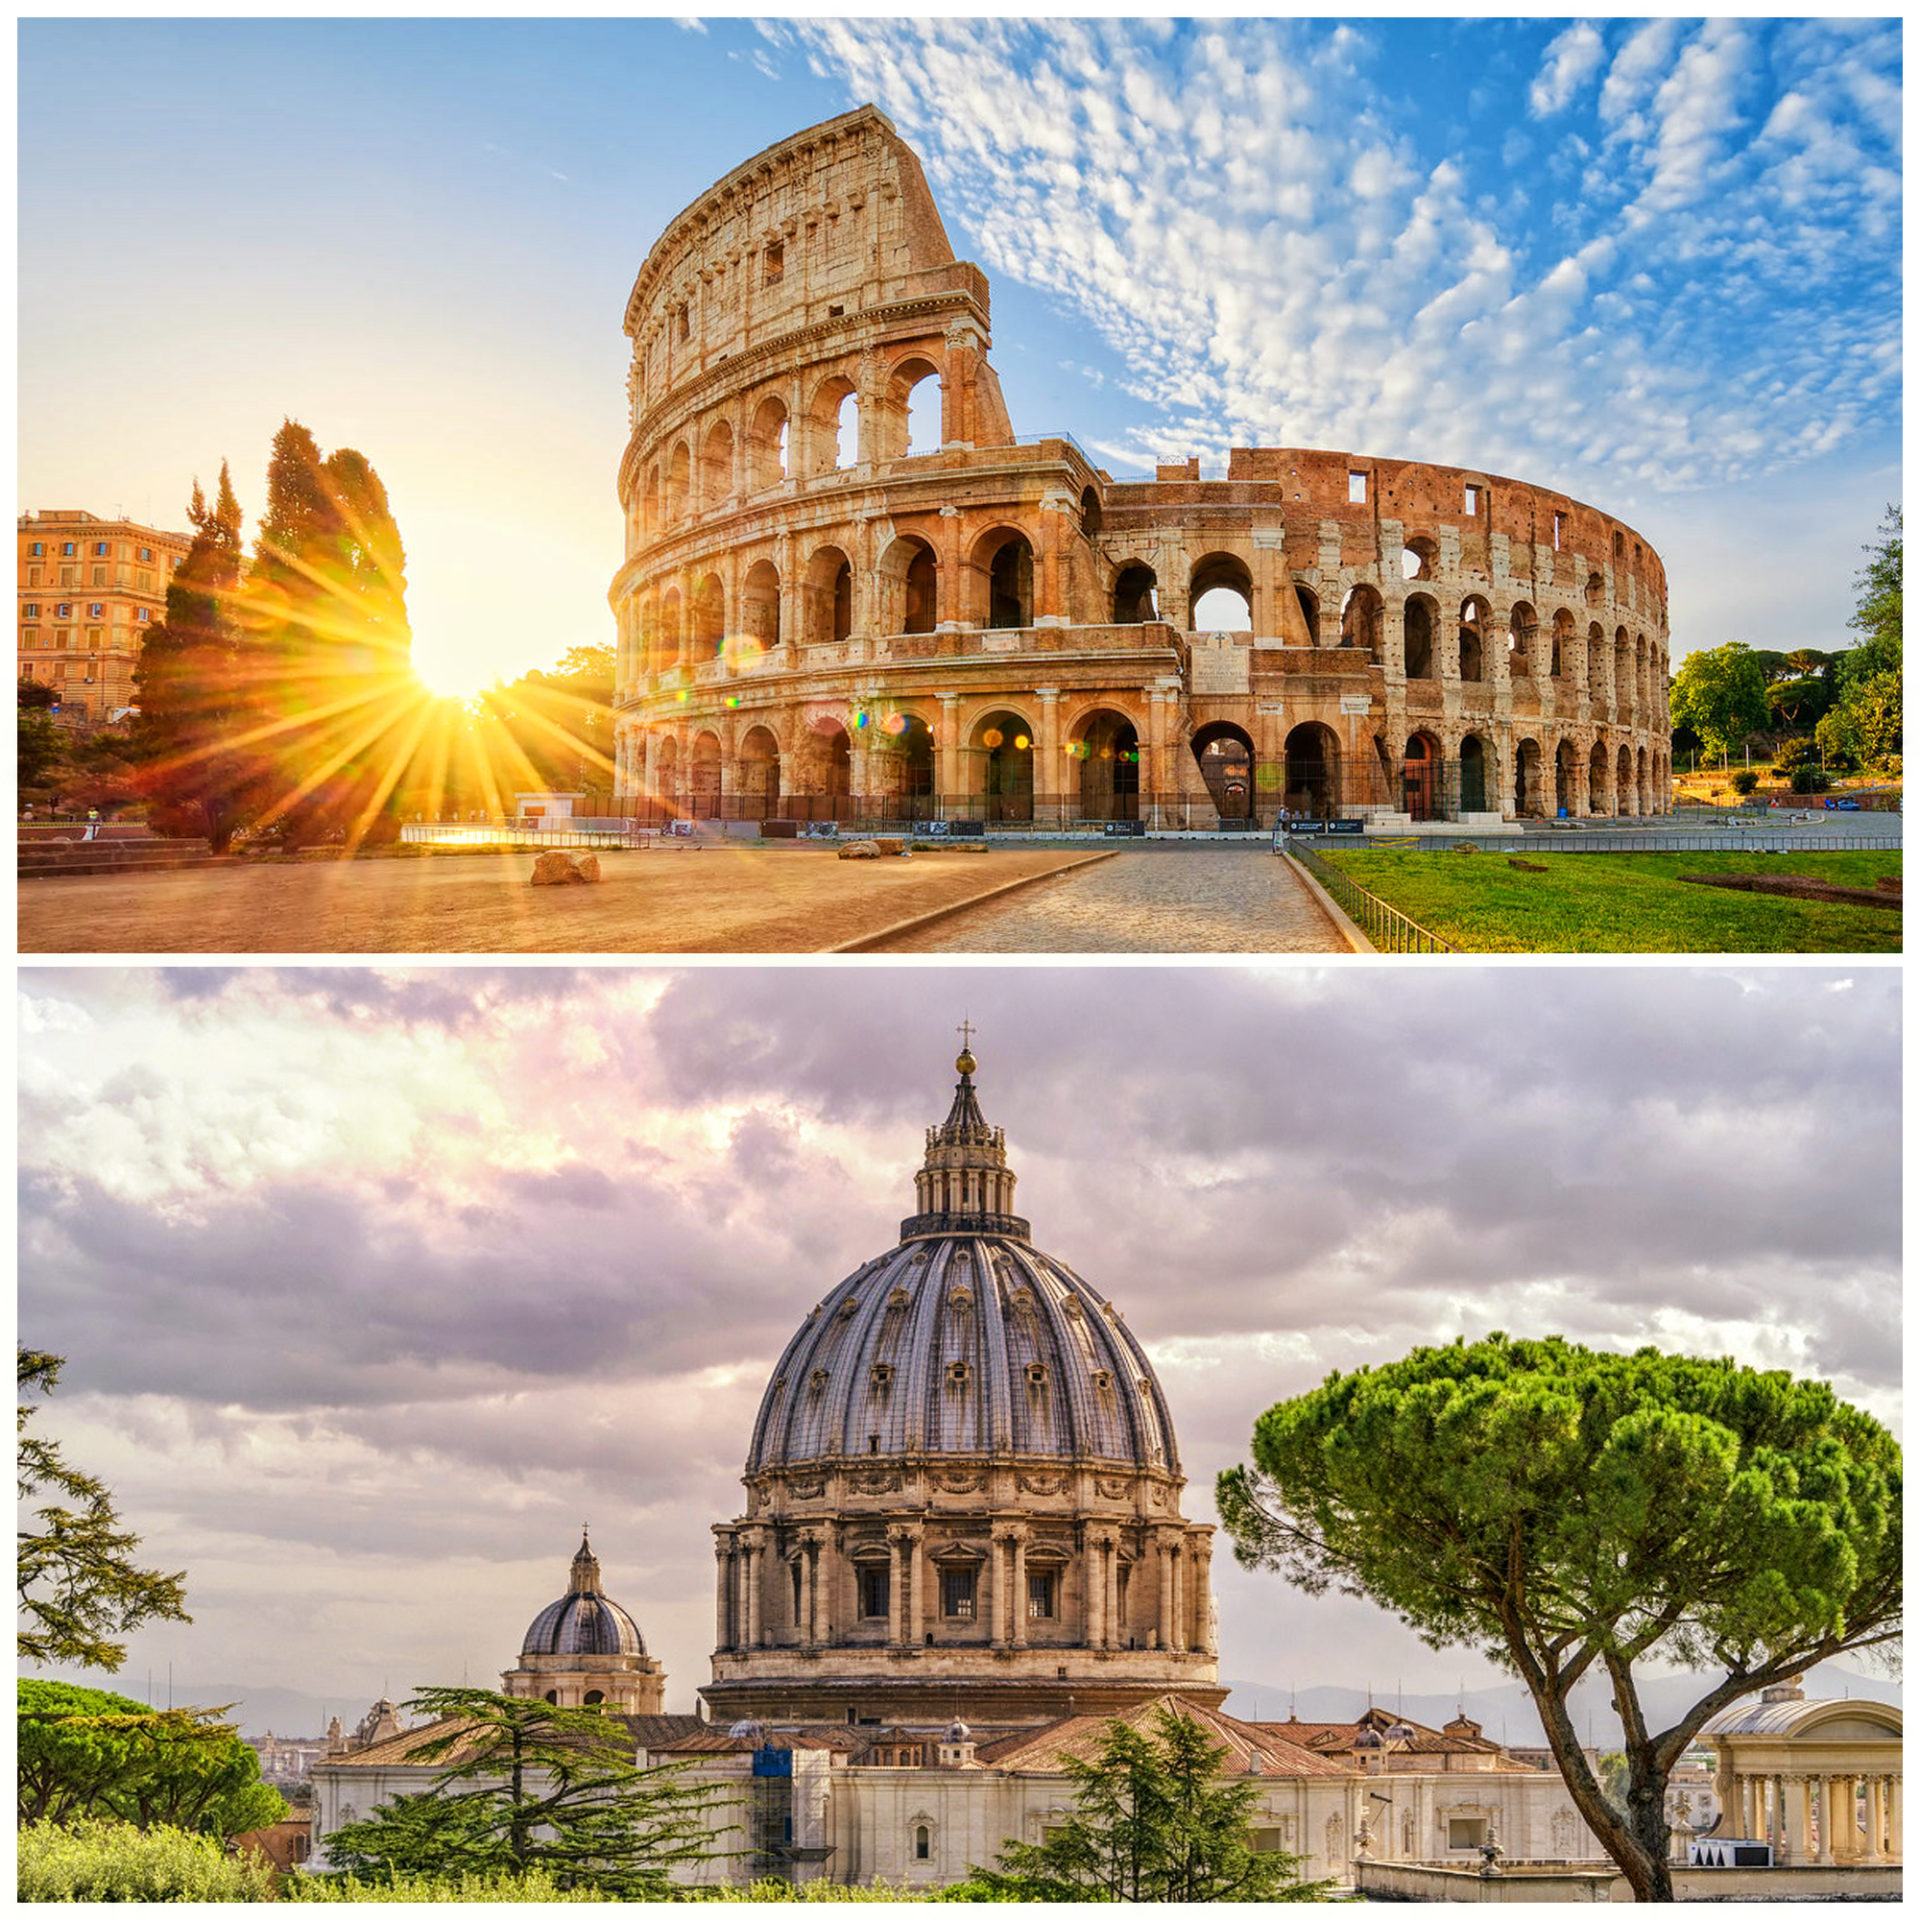 Colosseum and Vatican in a day If Rome was not built in a day, with us you will be able to visit the Colosseum, Vatican Museums  and more in a single day!